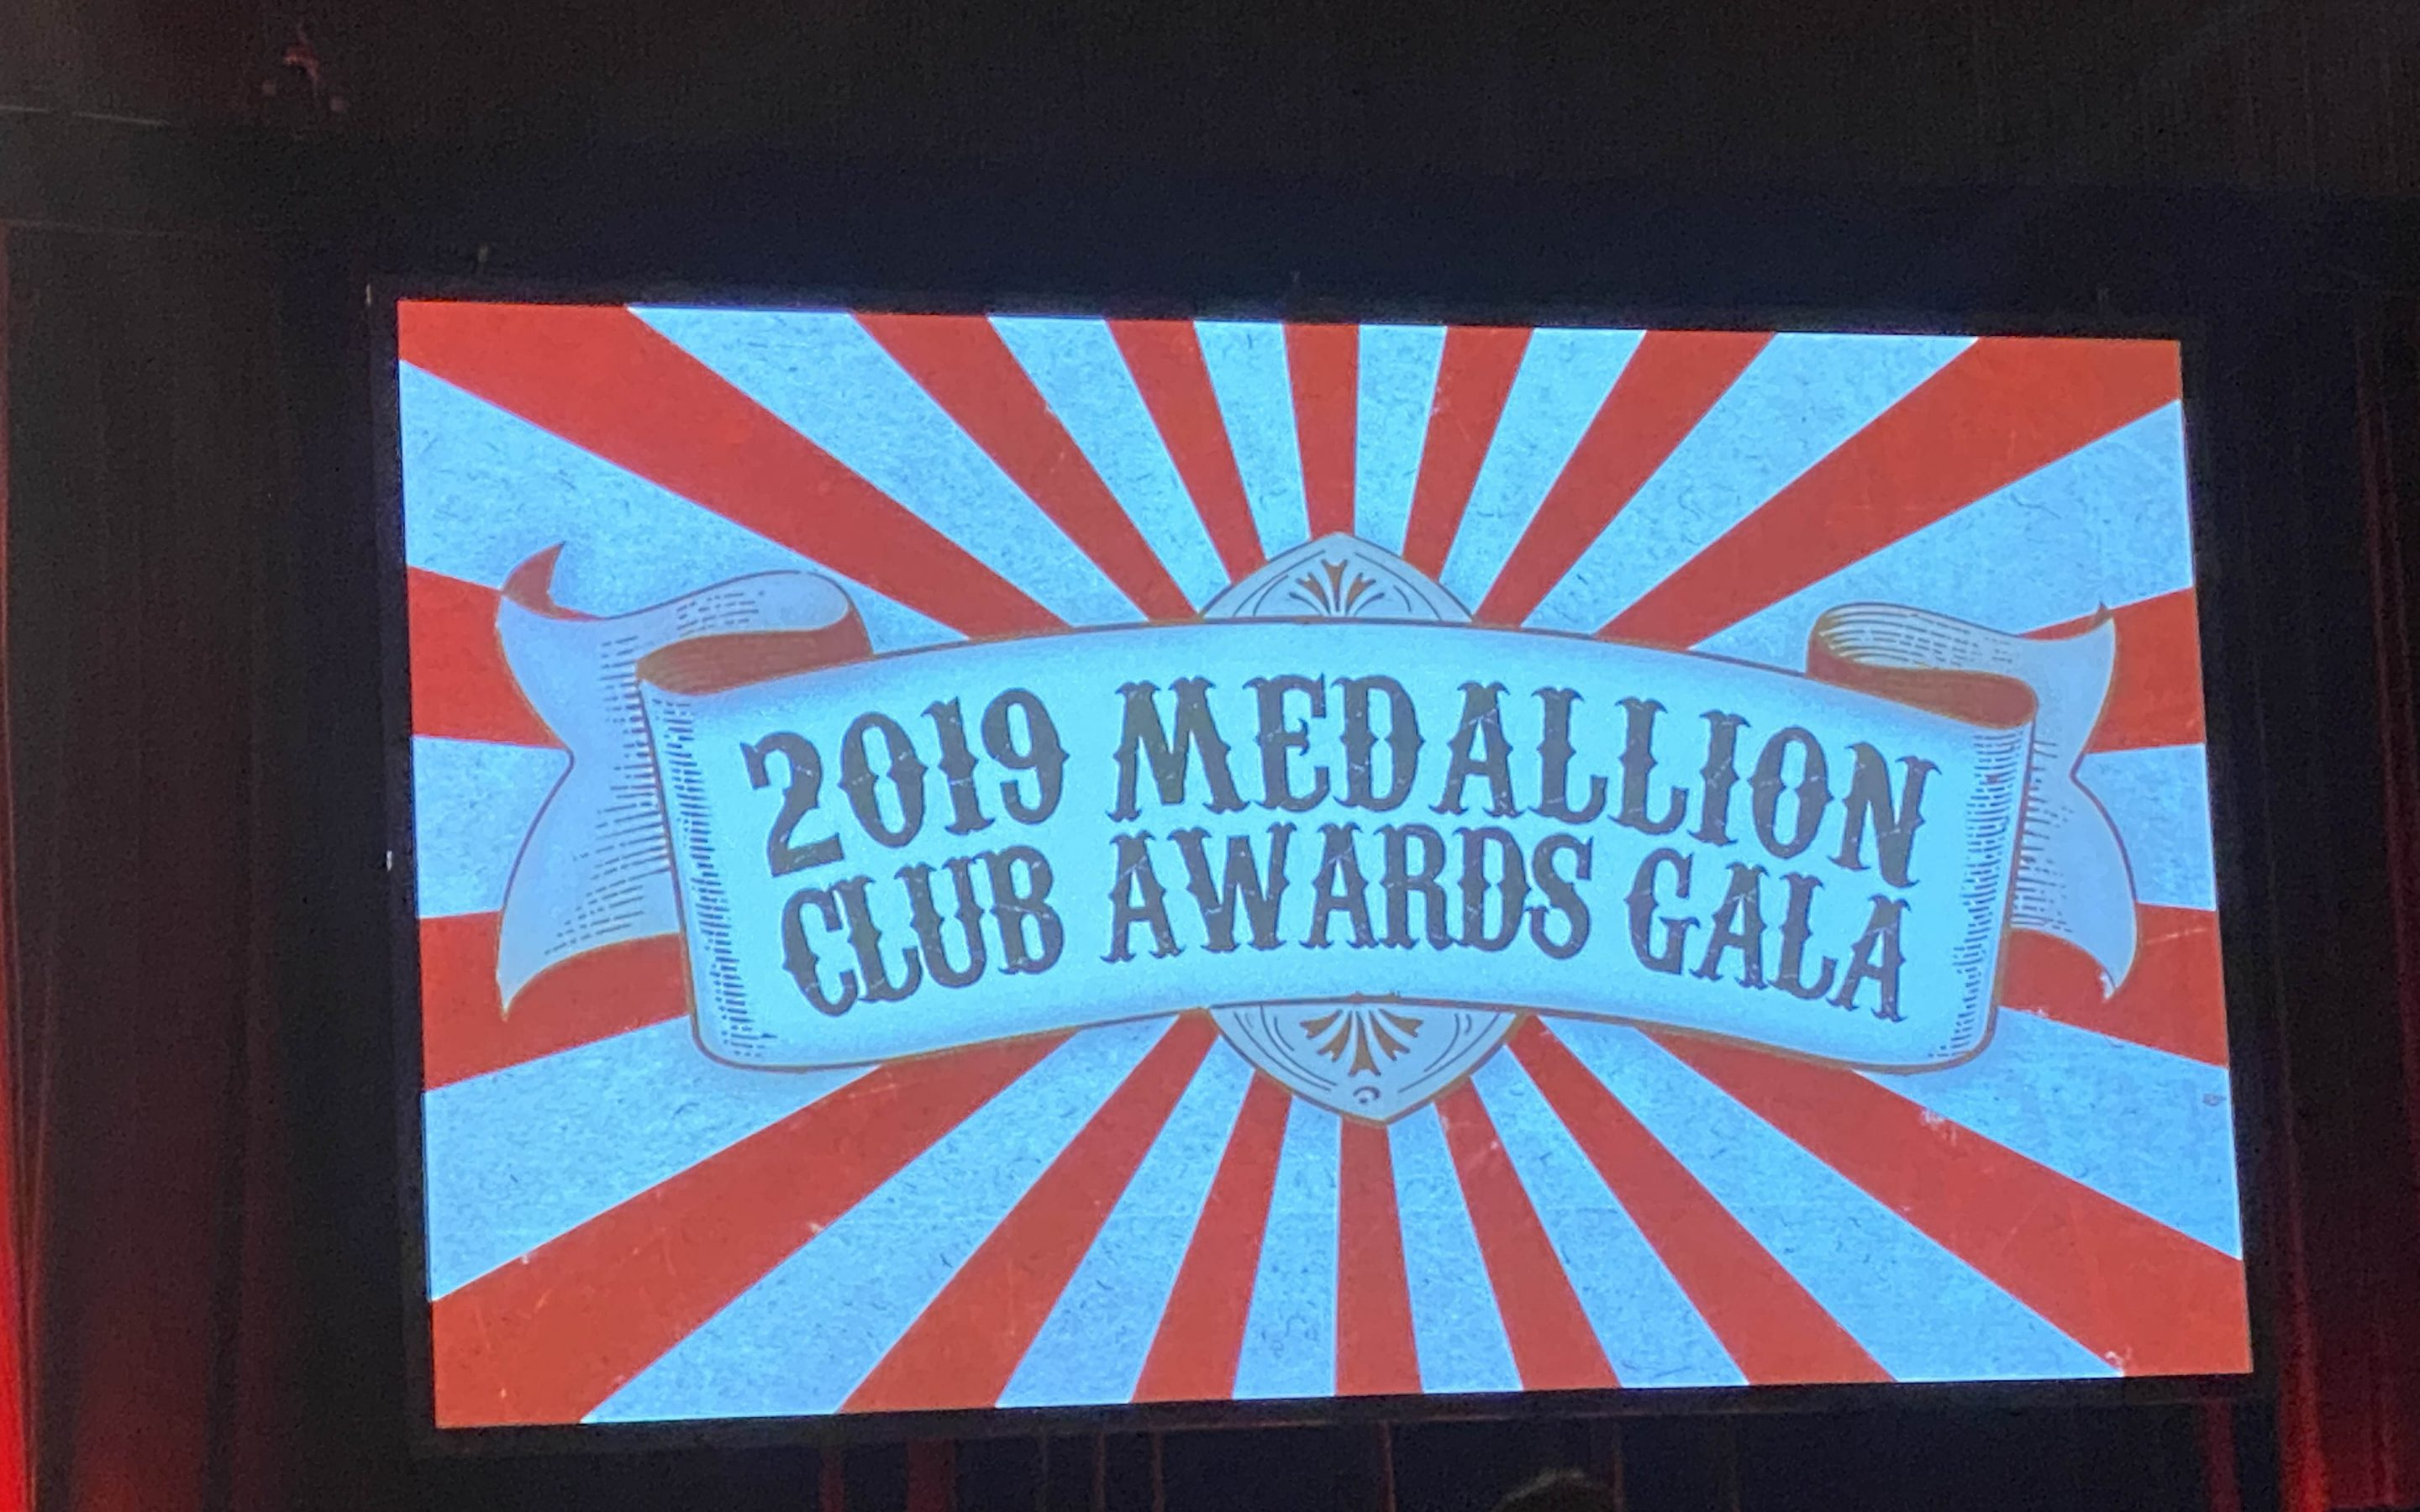 2019 Medallion Club Awards Gala with licensed Rental Property Management Team